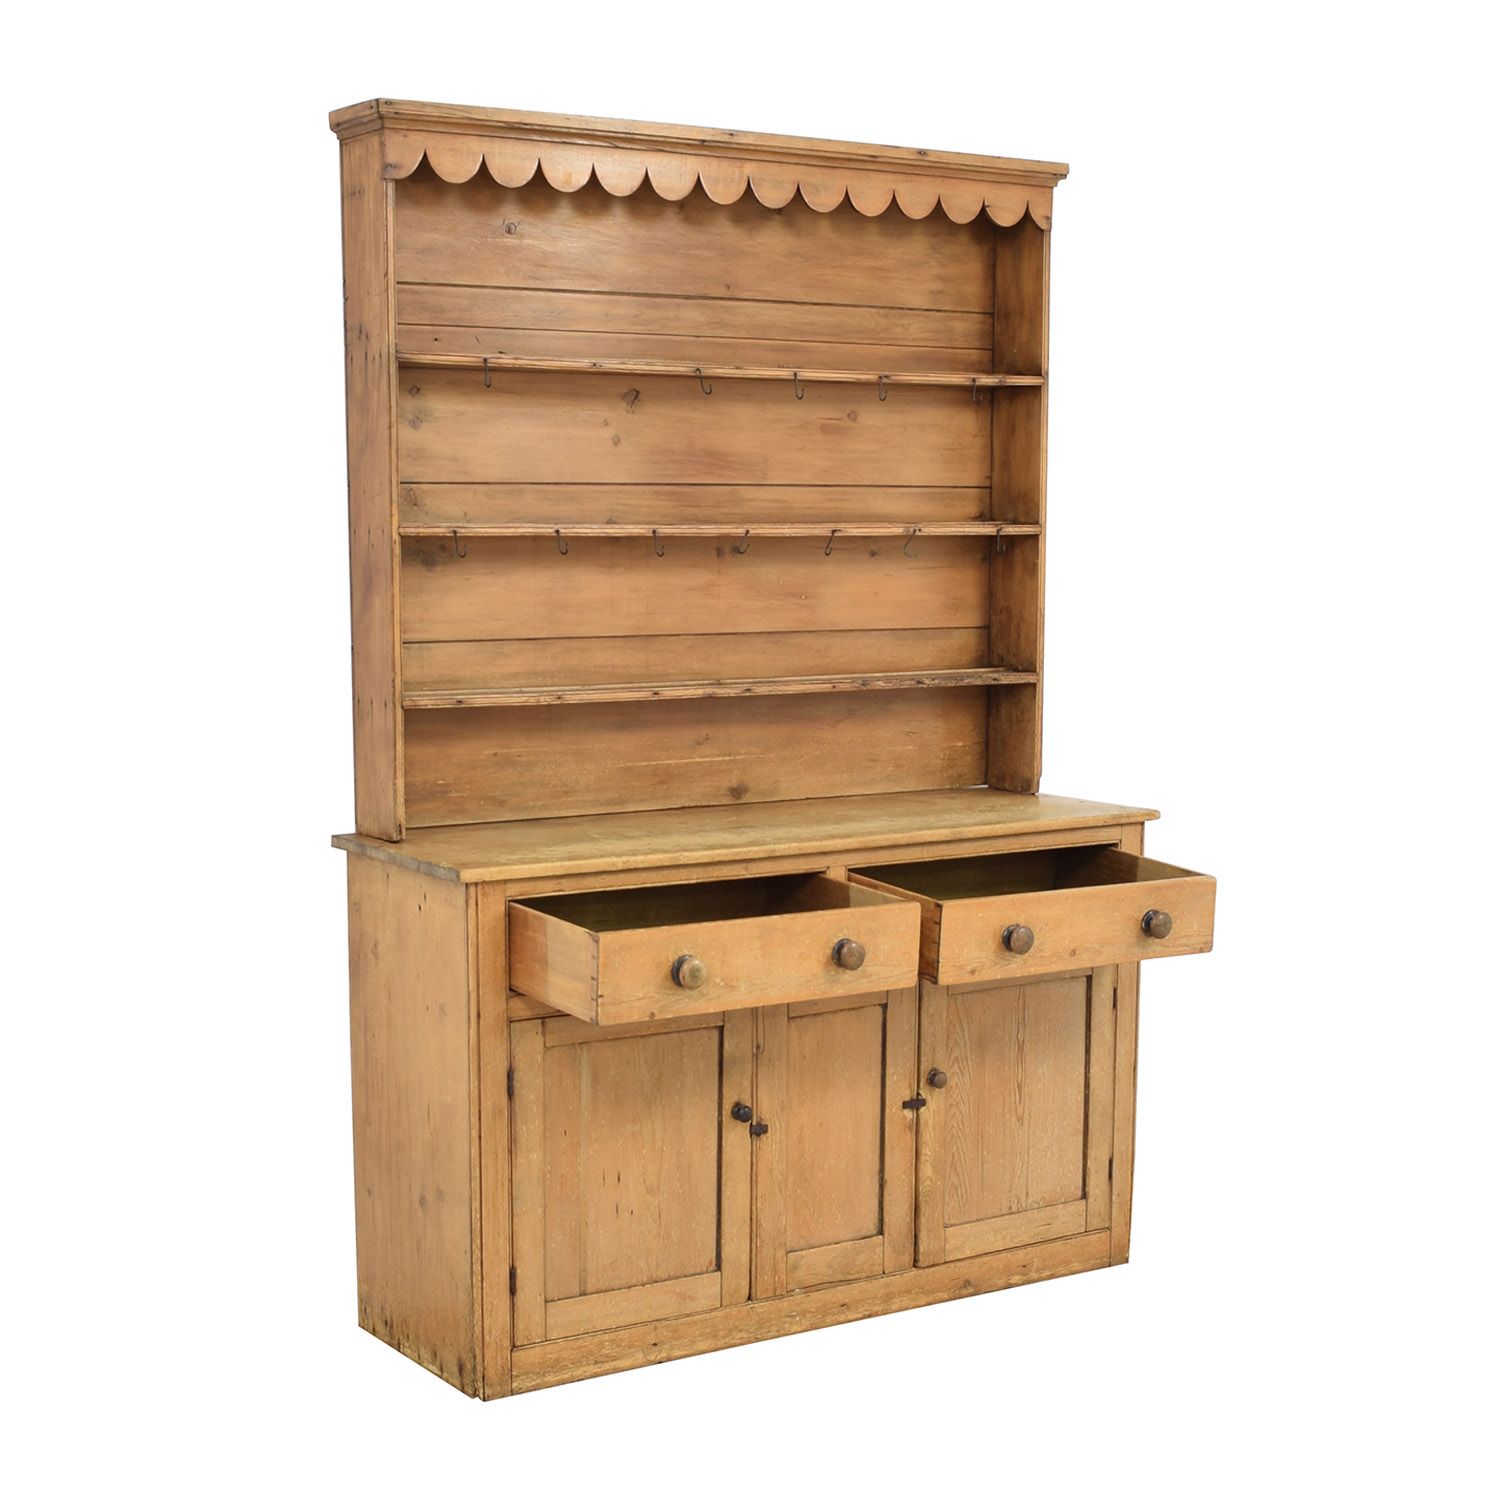 77 Off Vintage Welsh Cabinet C 1820 Storage